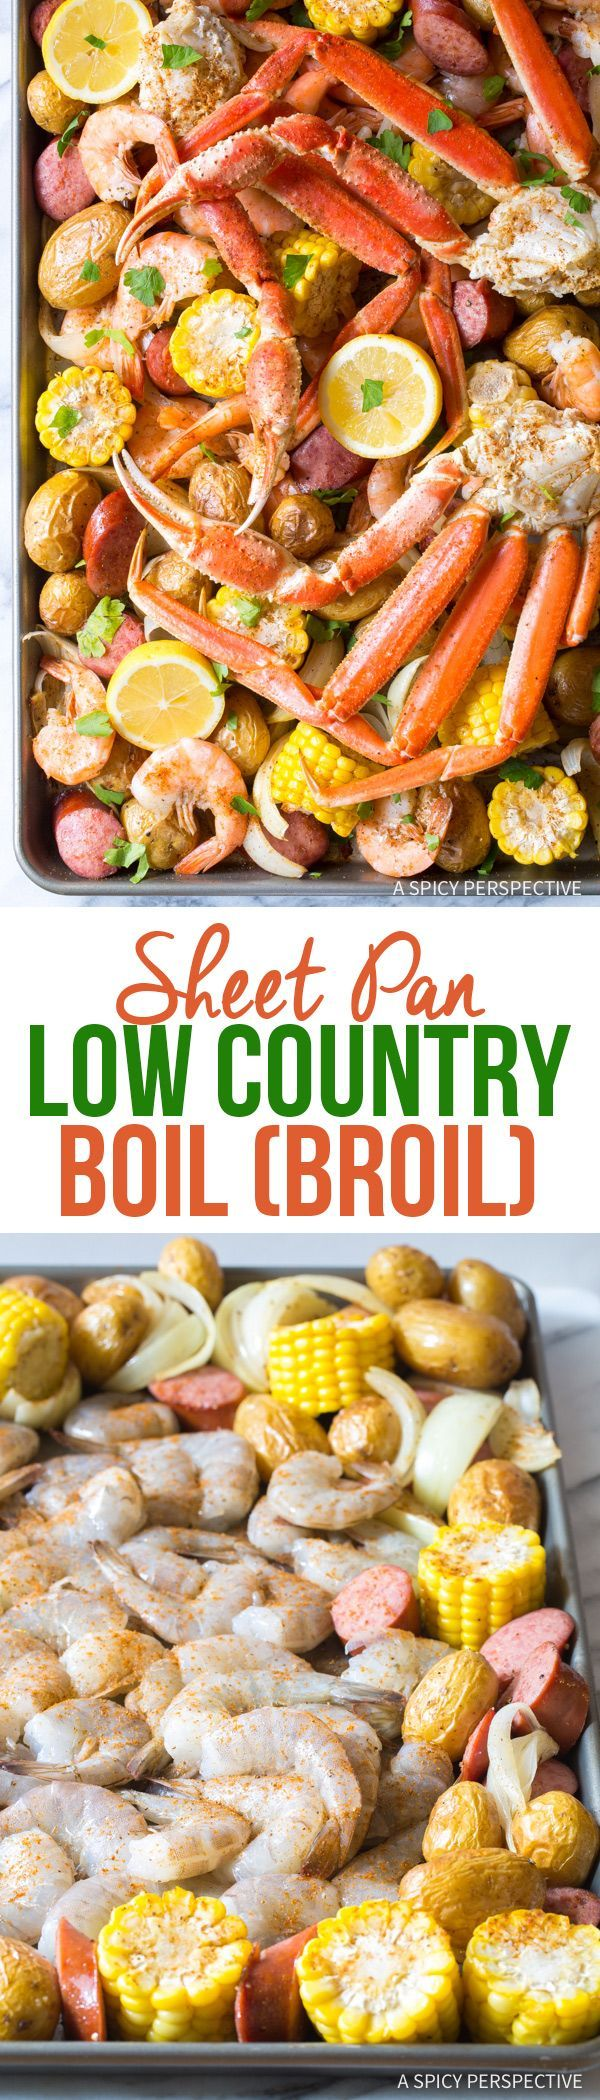 Easy Sheet Pan Low Country Boil (Broil) Recipe  via @spicyperspectiv